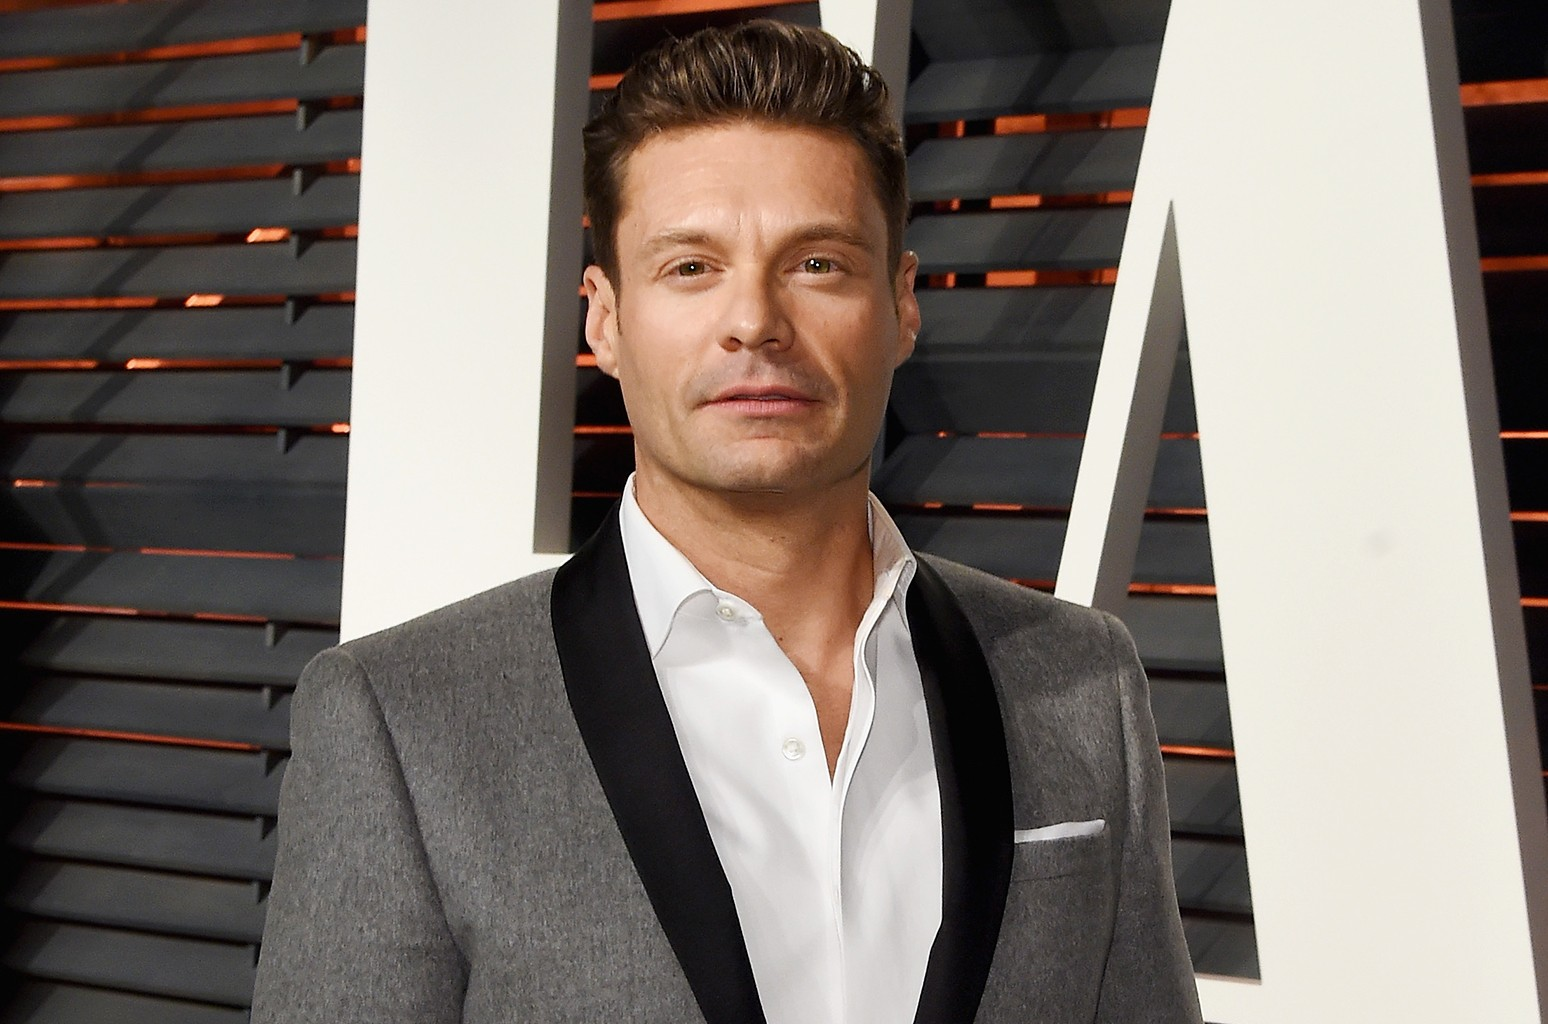 Ryan Seacrest attends the 2016 Vanity Fair Oscar Party Hosted By Graydon Carter at the Wallis Annenberg Center for the Performing Arts on Feb. 28, 2016 in Beverly Hills, Calif.